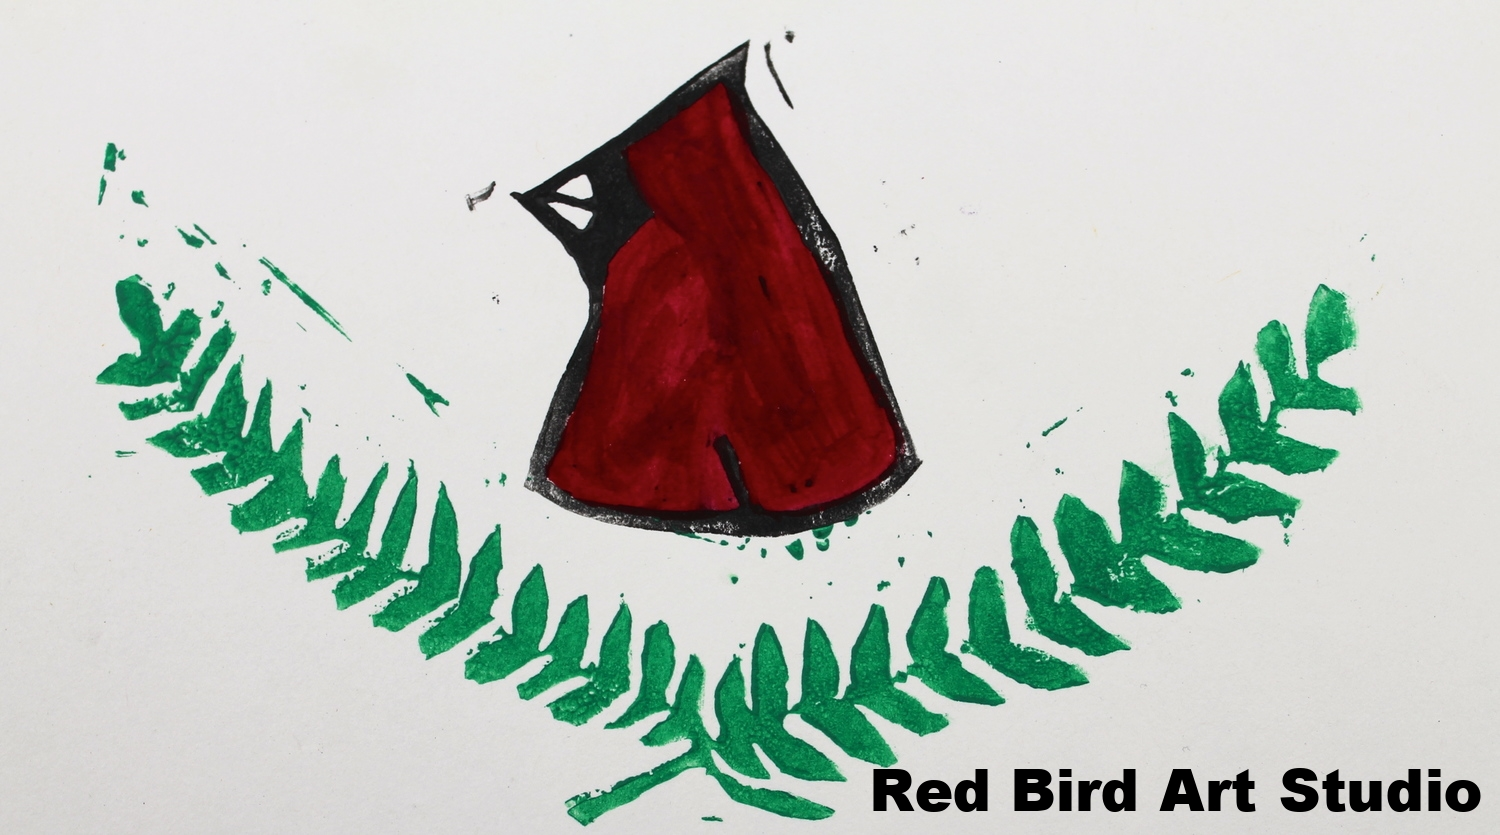 Red Bird Art Studio